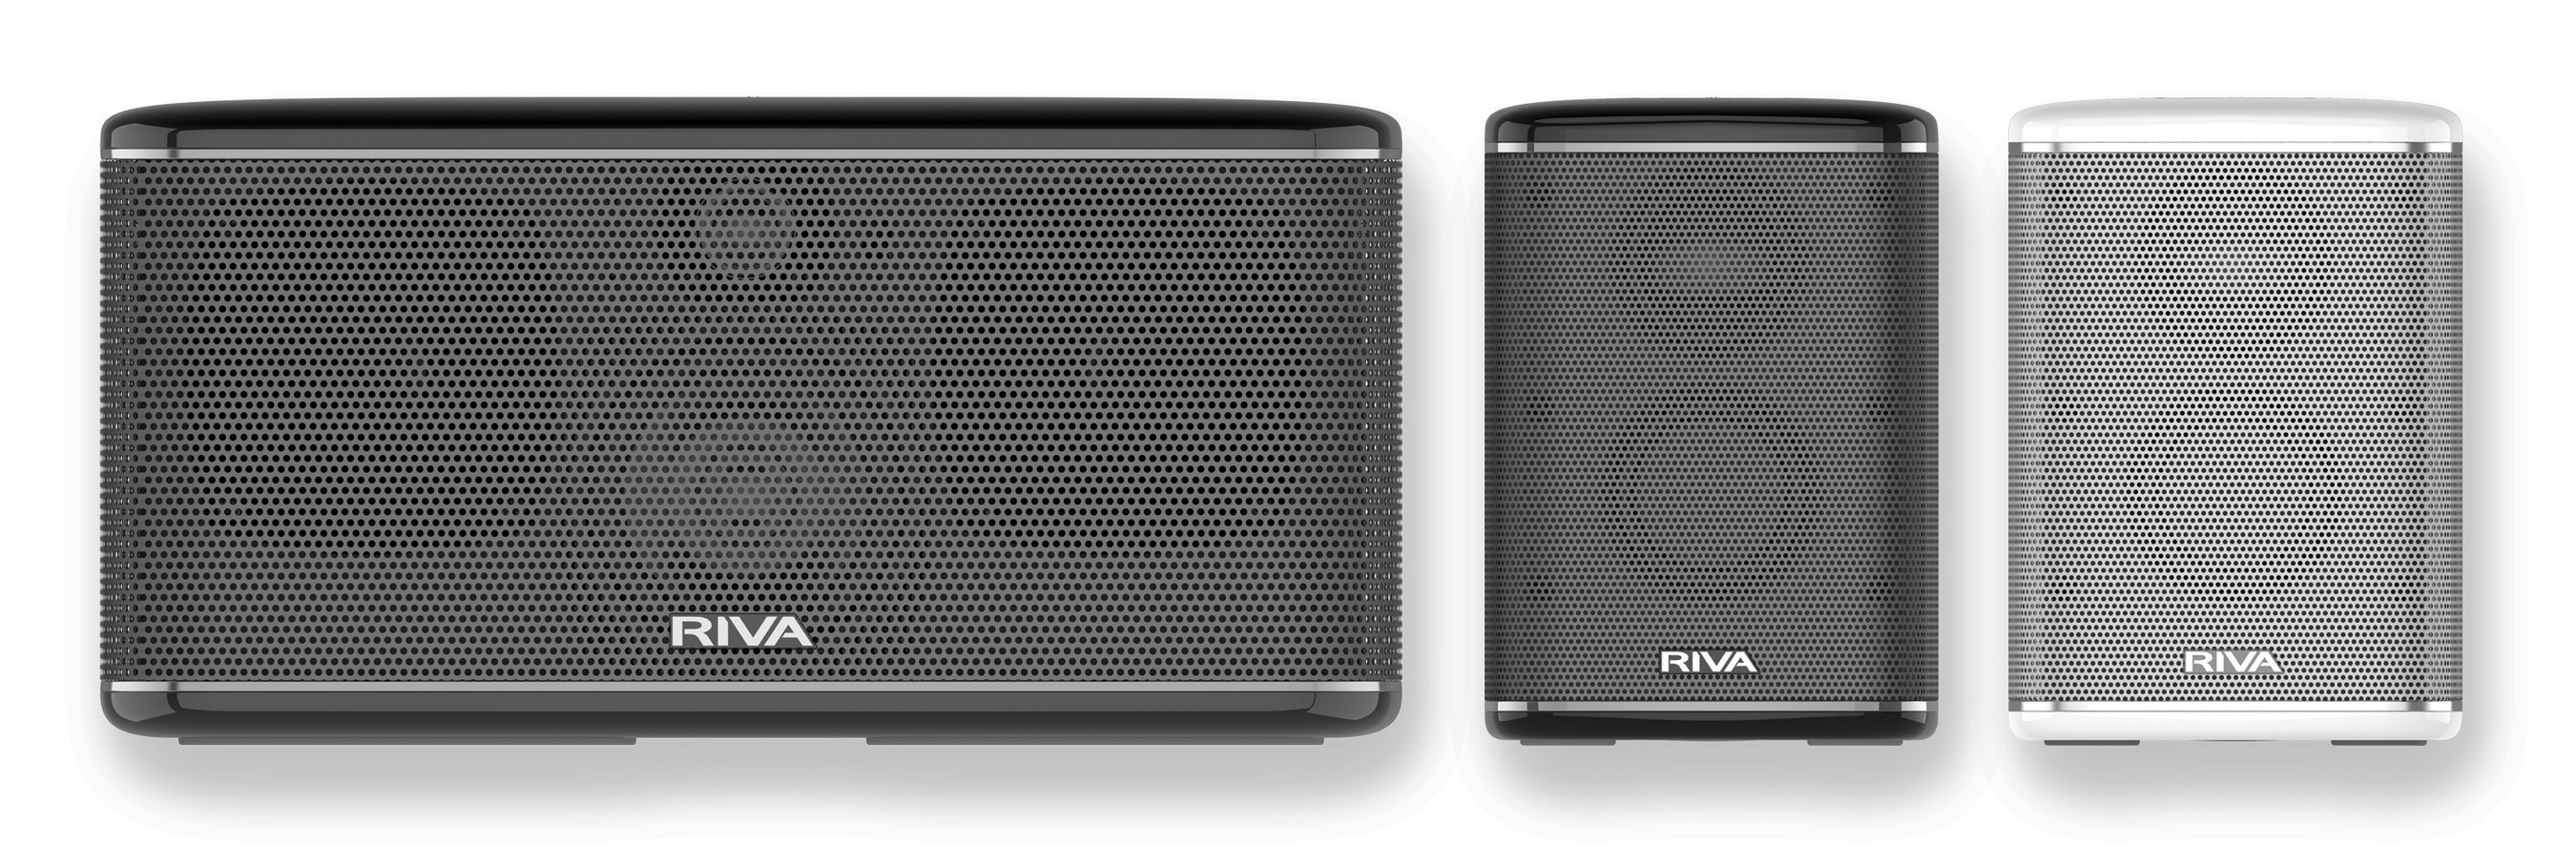 RIVA Audio Introduces The RIVA WAND Series Multi-Space Music System With Unrivaled Audio Quality